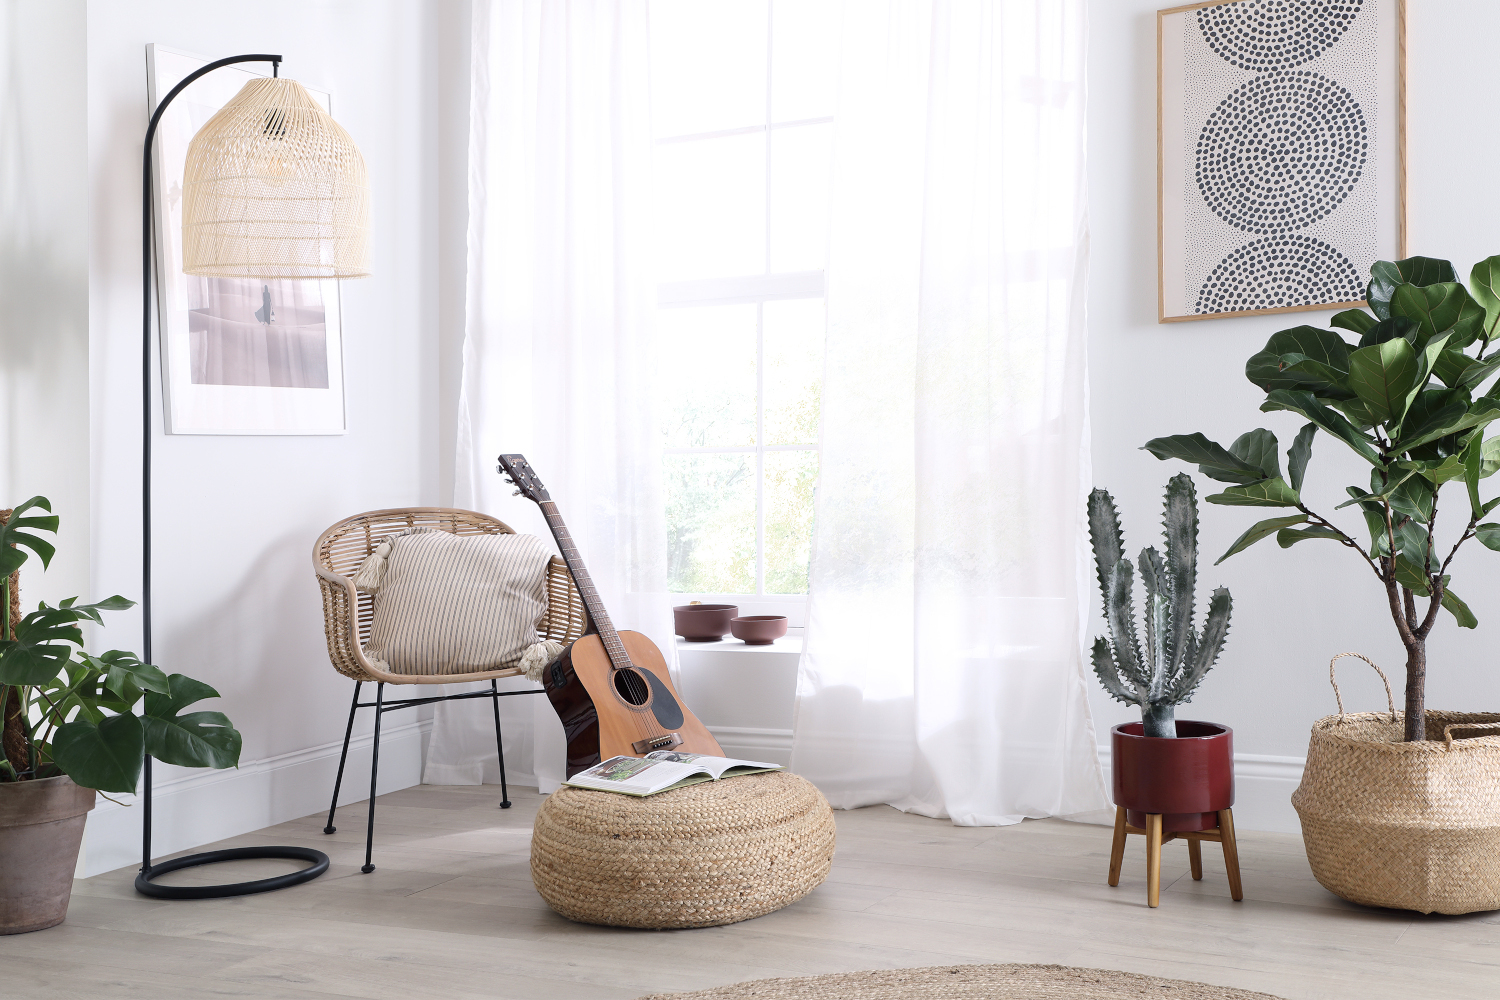 Boho room with rattan chair and lamp, and indoor plants